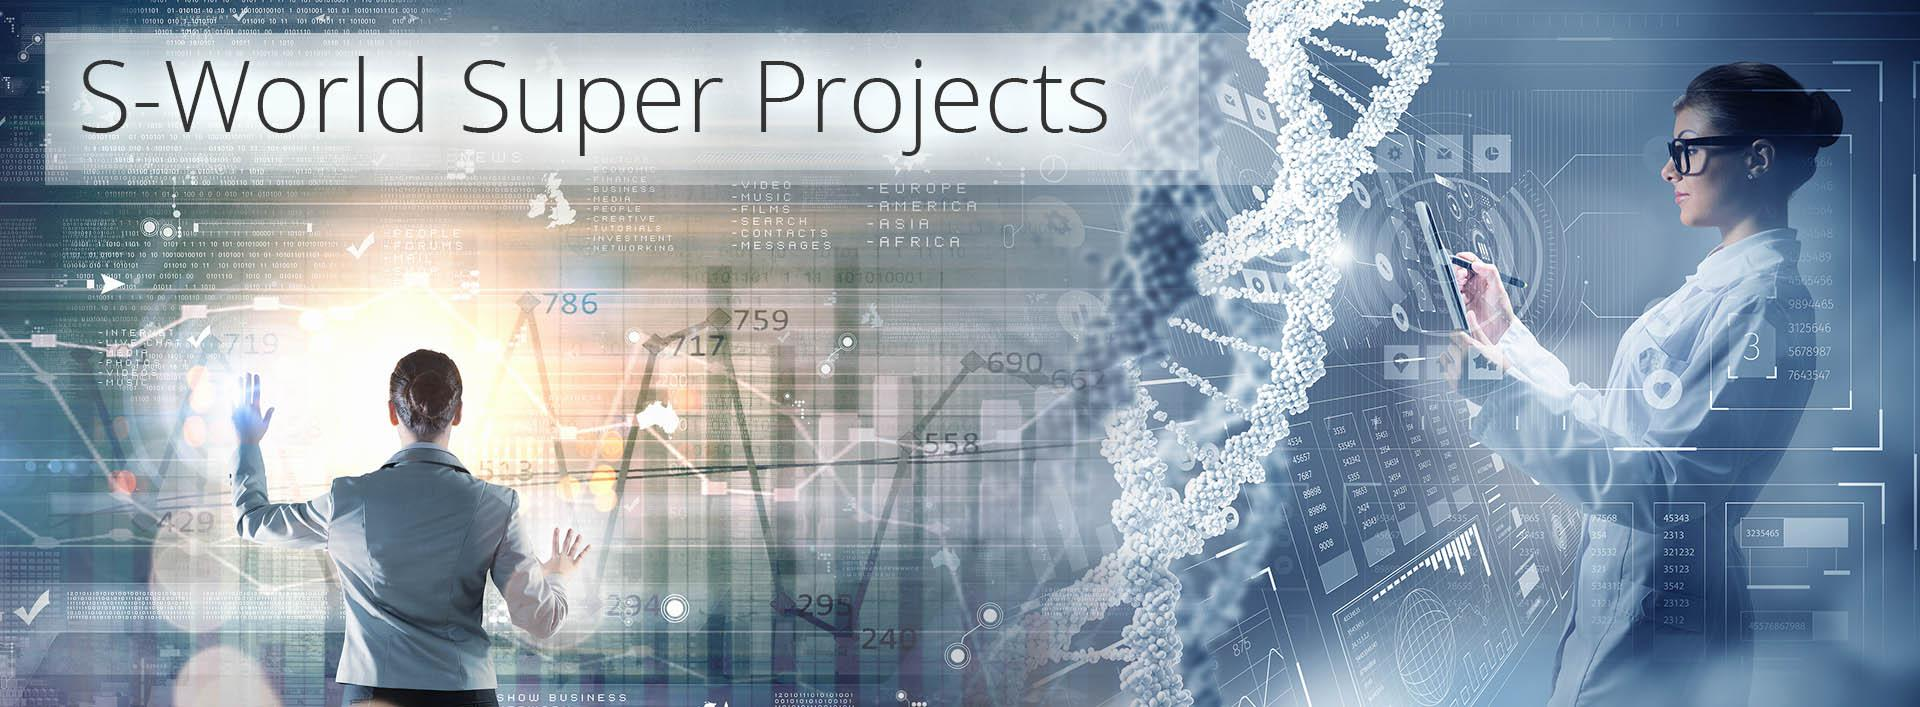 S-World Super Projects